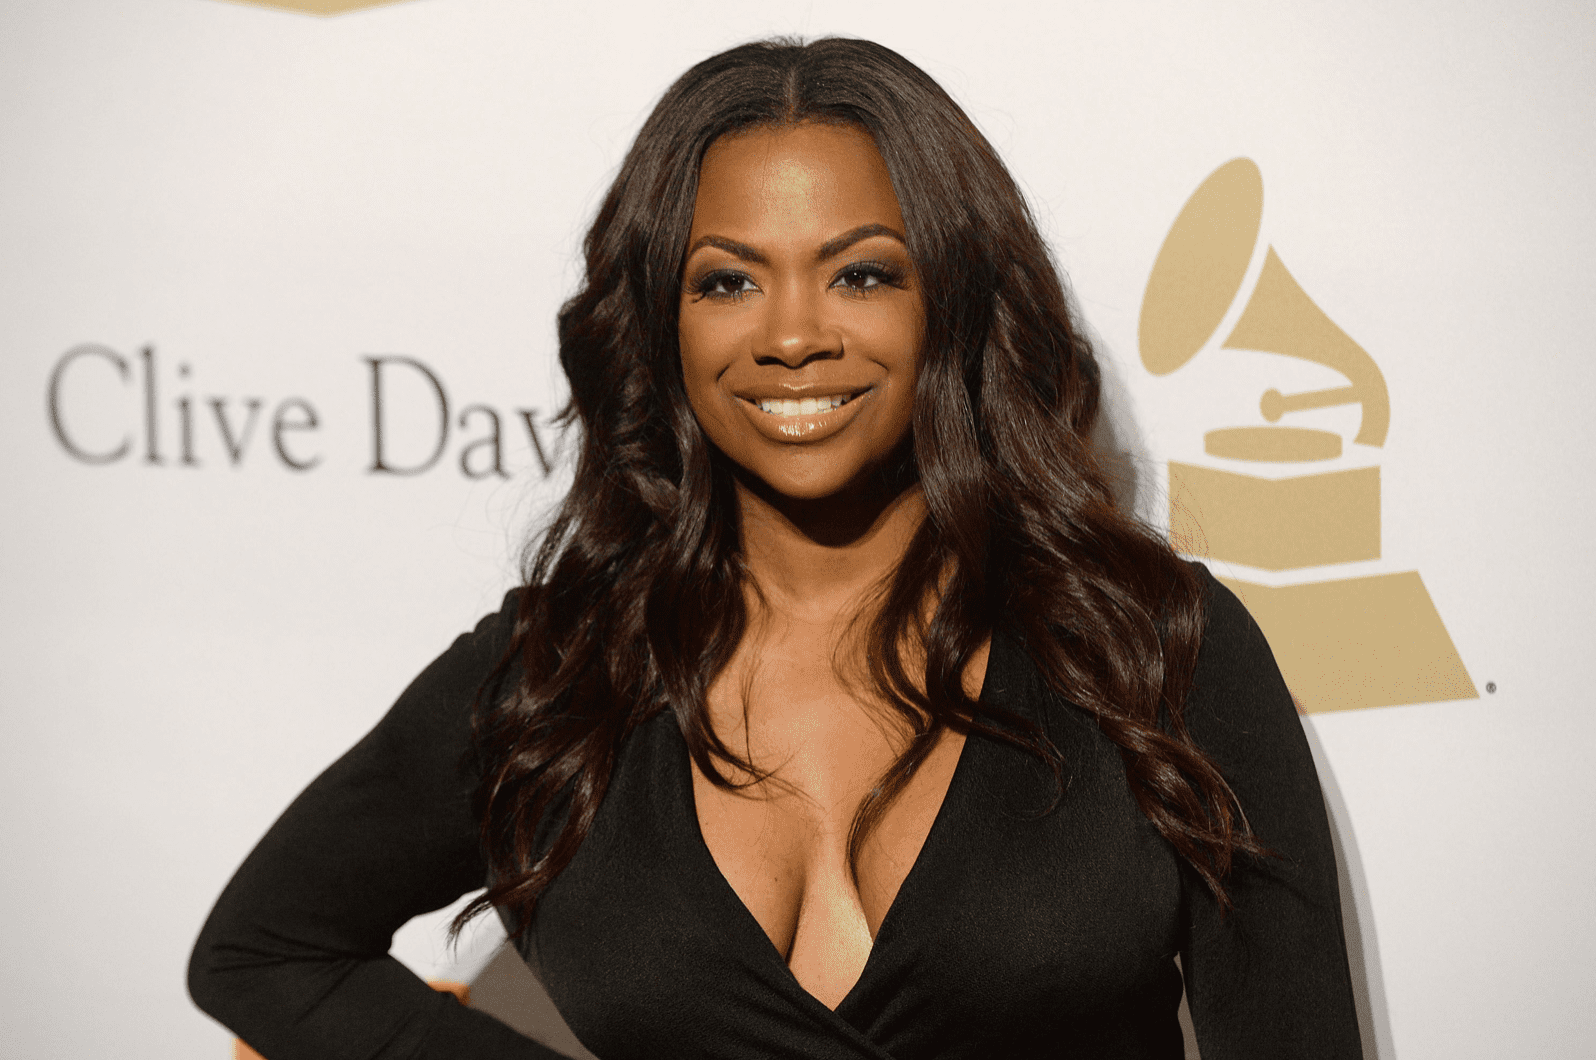 Kandi Burruss during the 2017 Pre-Grammy Gala and Salute to Industry Icons at The Beverly Hilton Hotel on February 11, 2017 in Beverly Hills, California.   Source: Getty Images